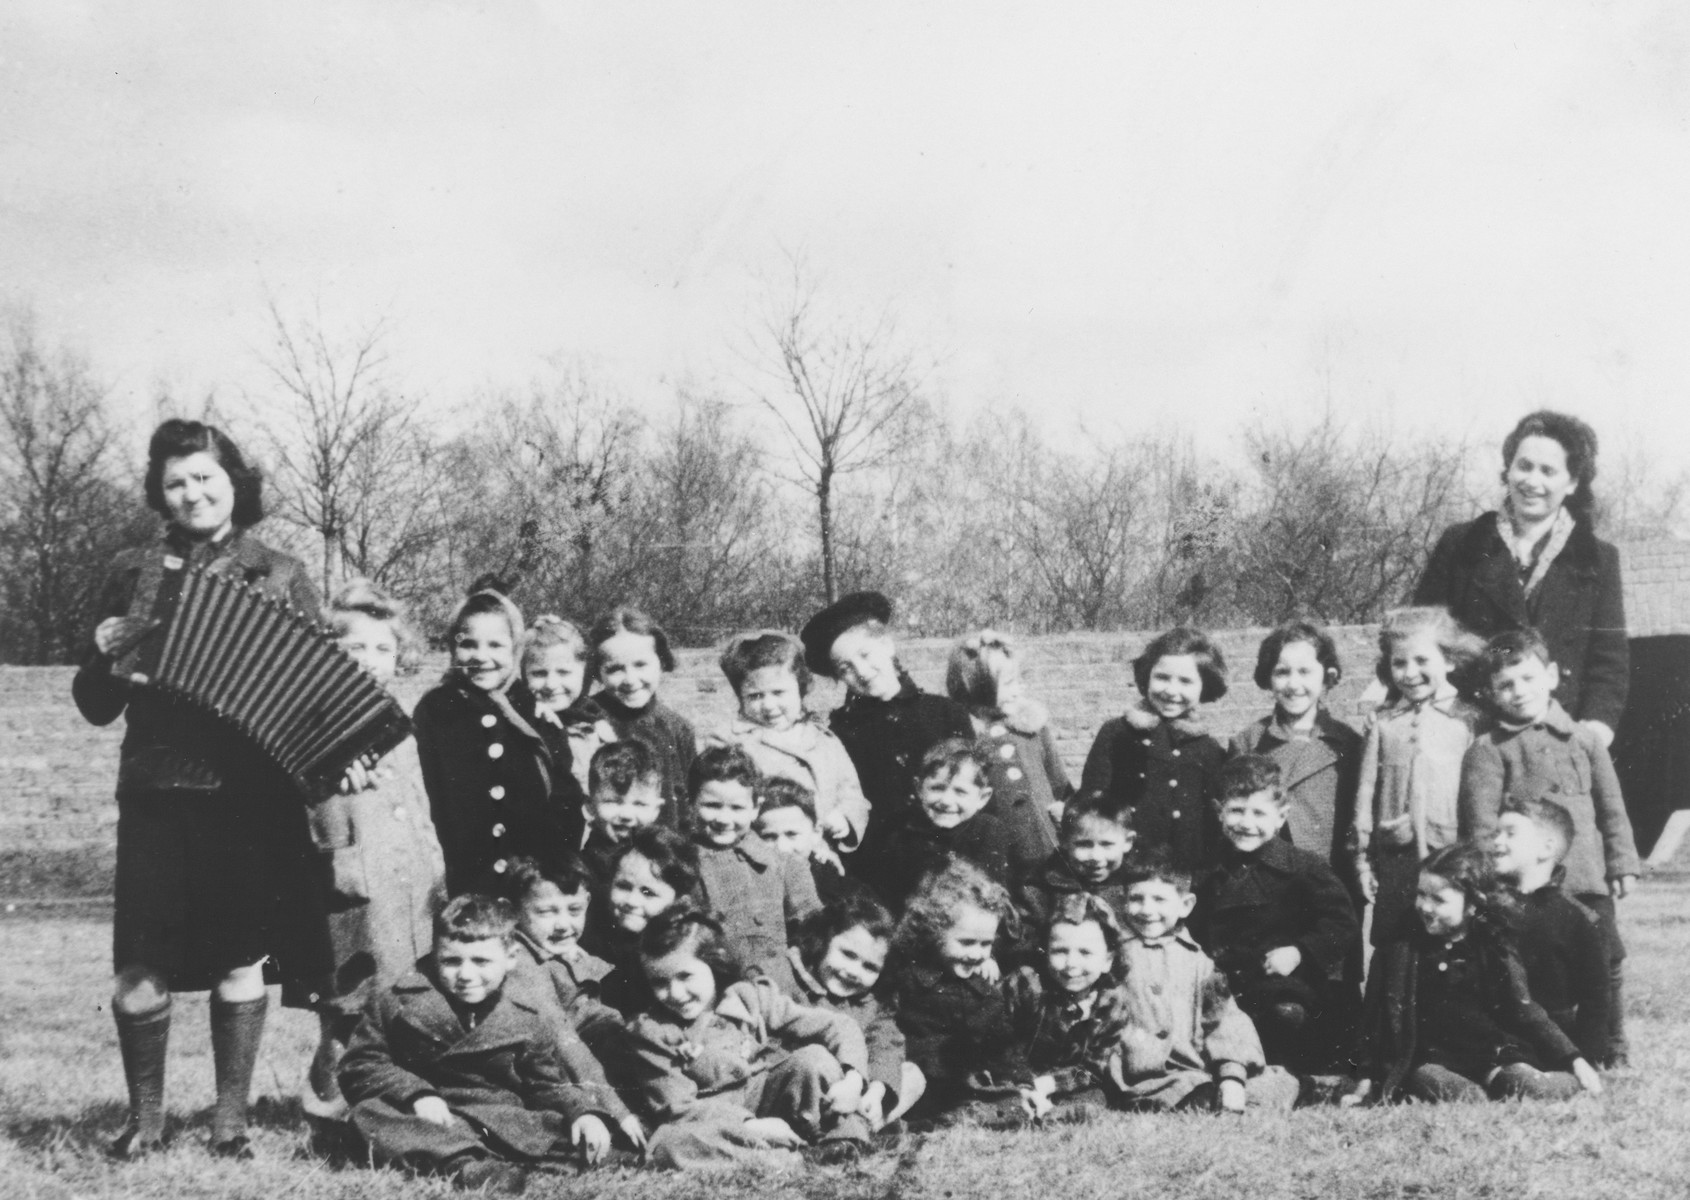 Preschoolers in the Mariendorf displaced persons camp enjoy the music of an accordian.  Those pictured include Maya Rosenfeld (later Freed Brown).